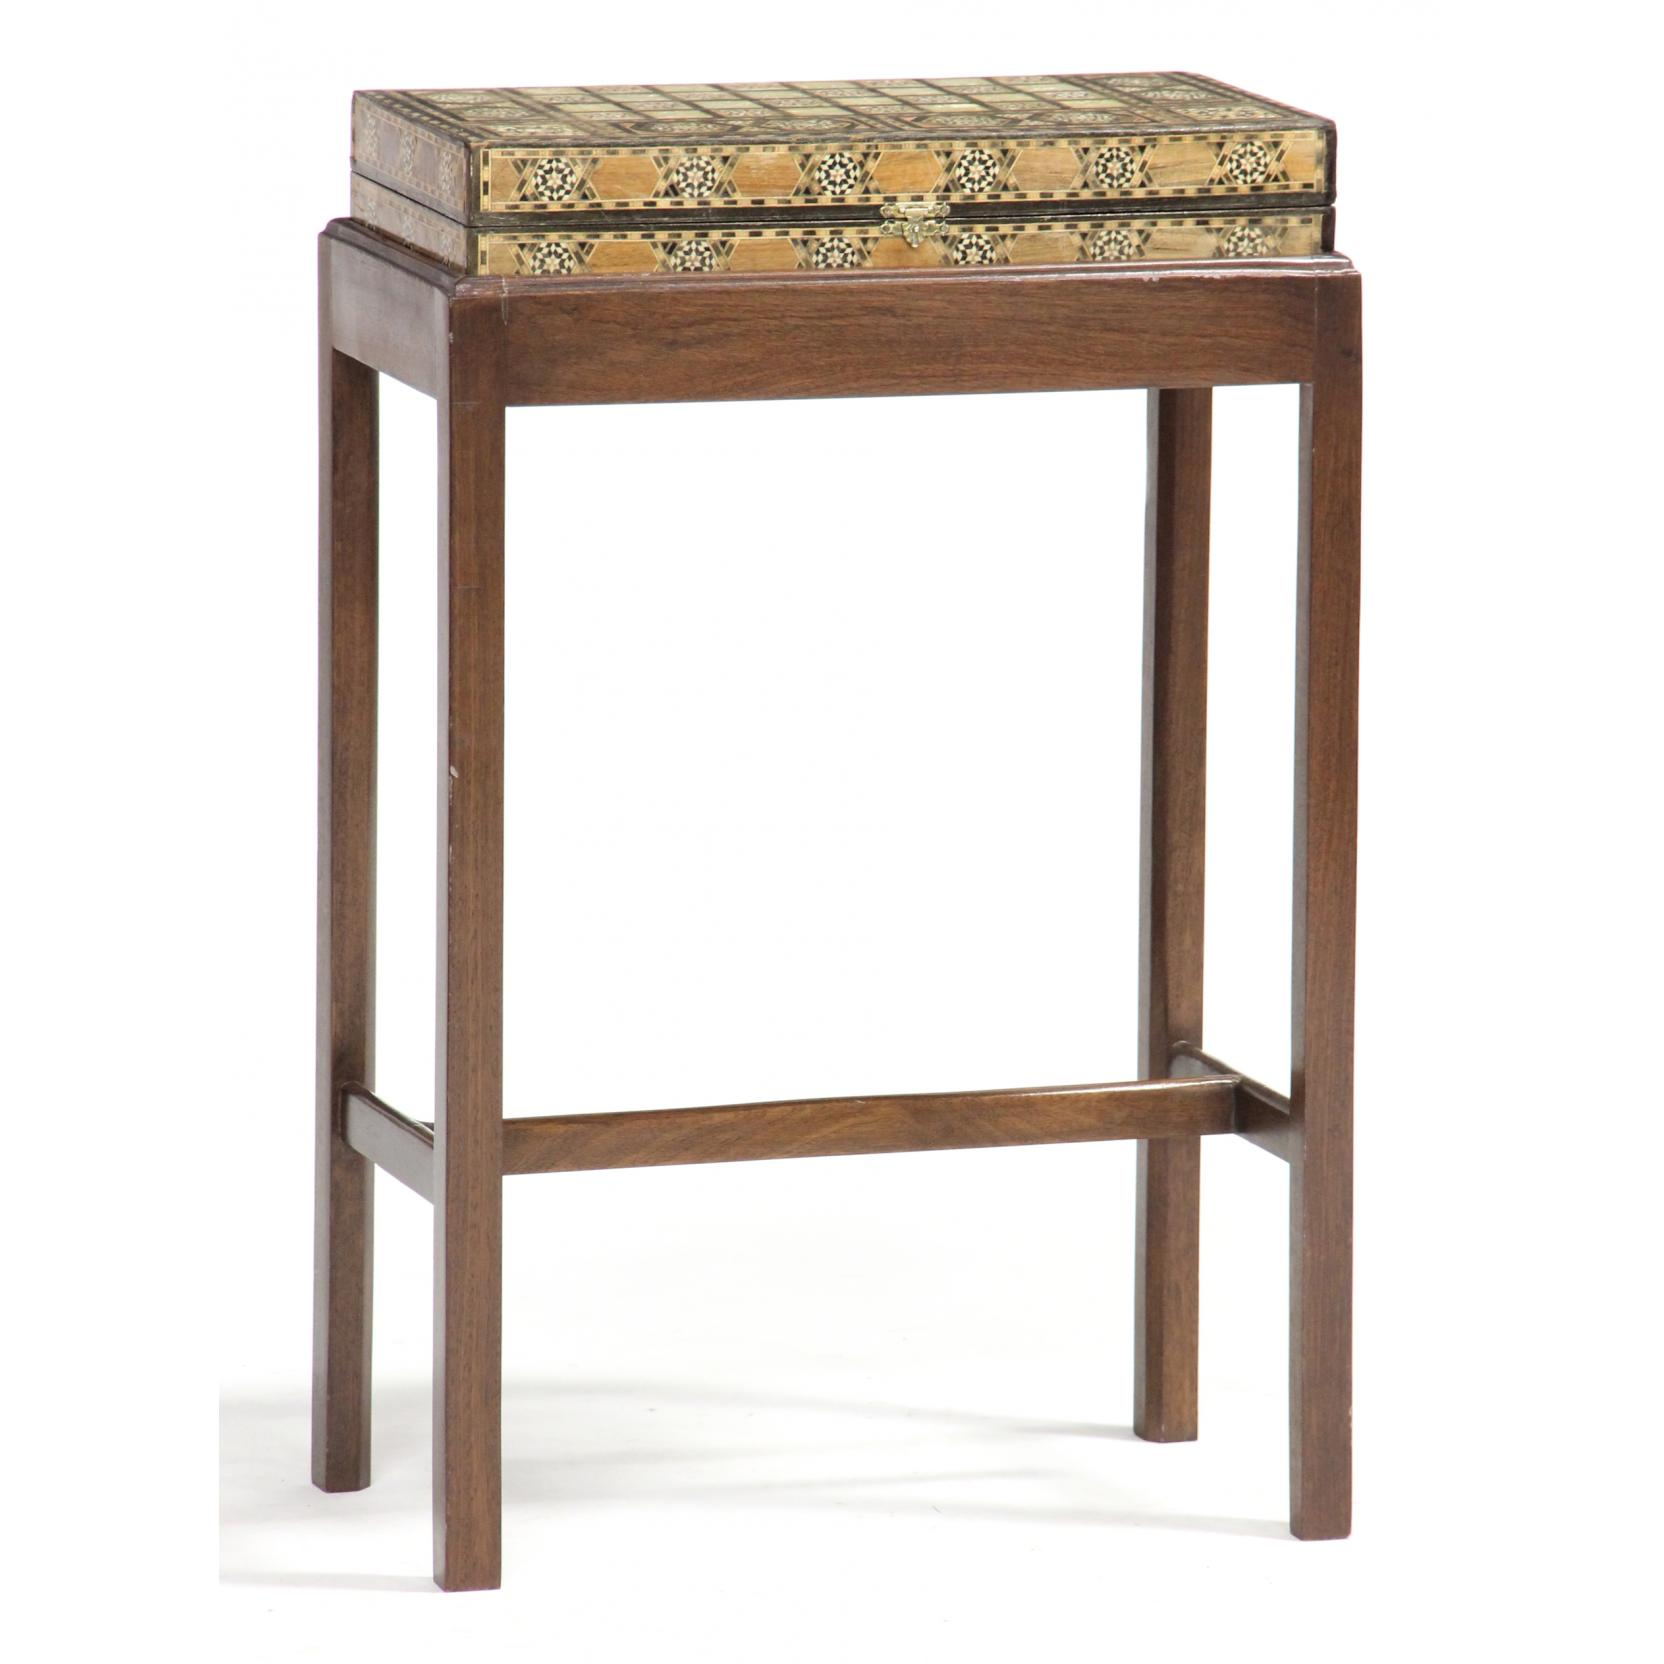 marquetry-inlaid-game-box-on-stand